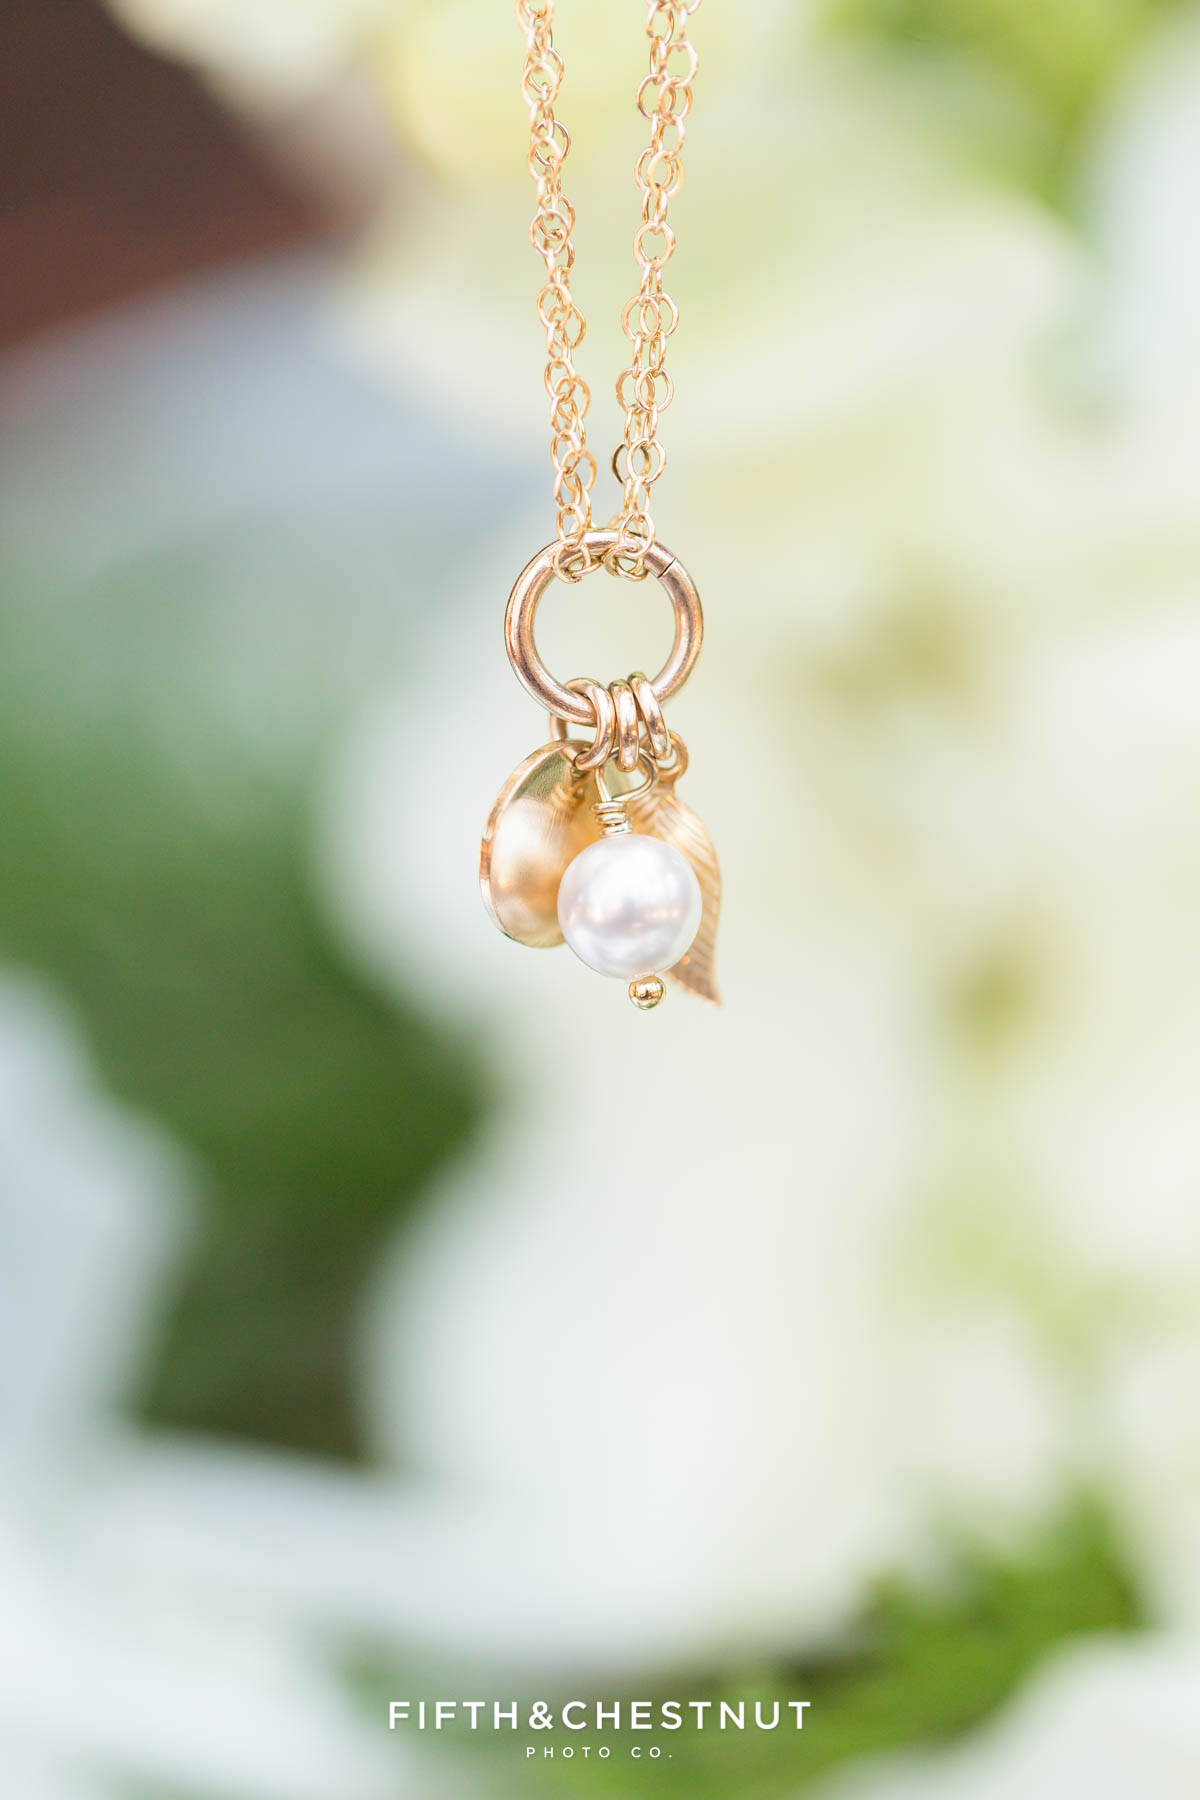 gold and pearl bracelet hanging from a flower for a zephyr cove wedding